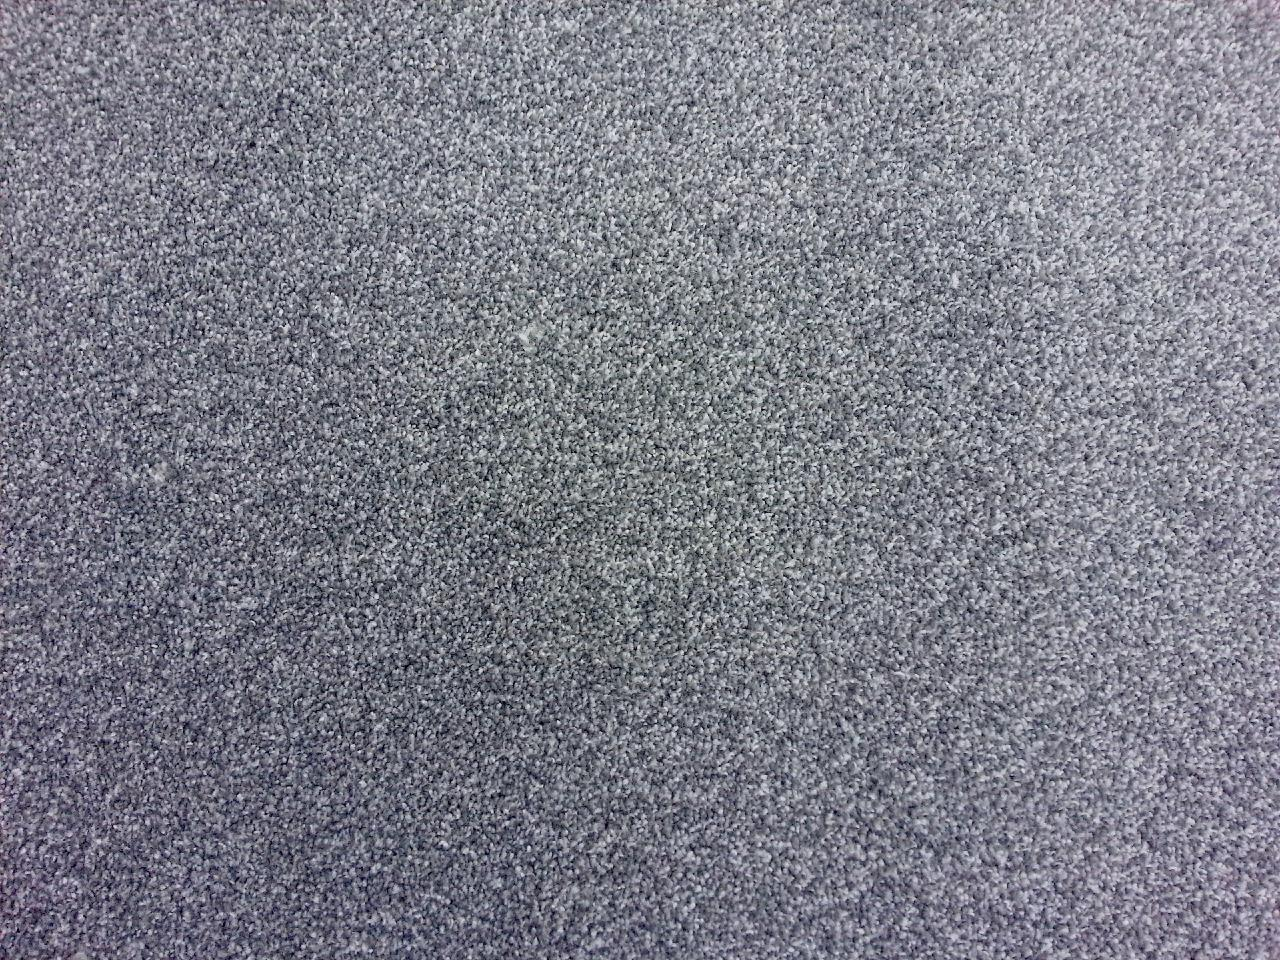 Saxony Extra Deep Pile Carpet. High Quality. 60% Cheaper Guaranteed For 8 Years